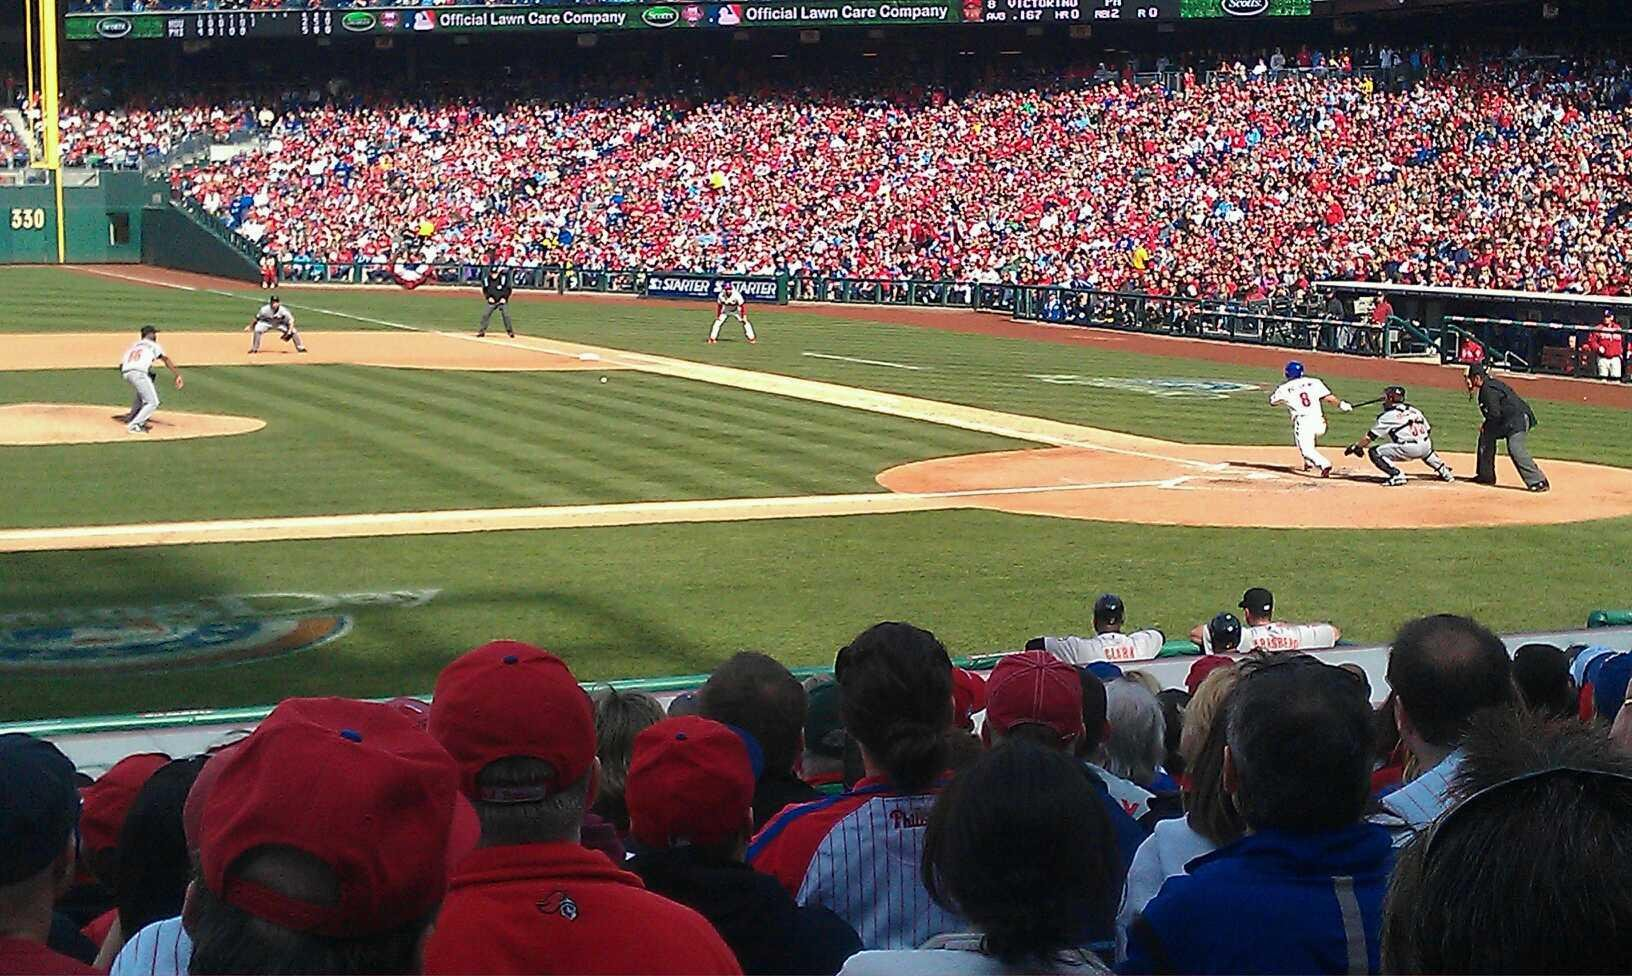 Citizens Bank Park Section 131 Row 15 Seat 16